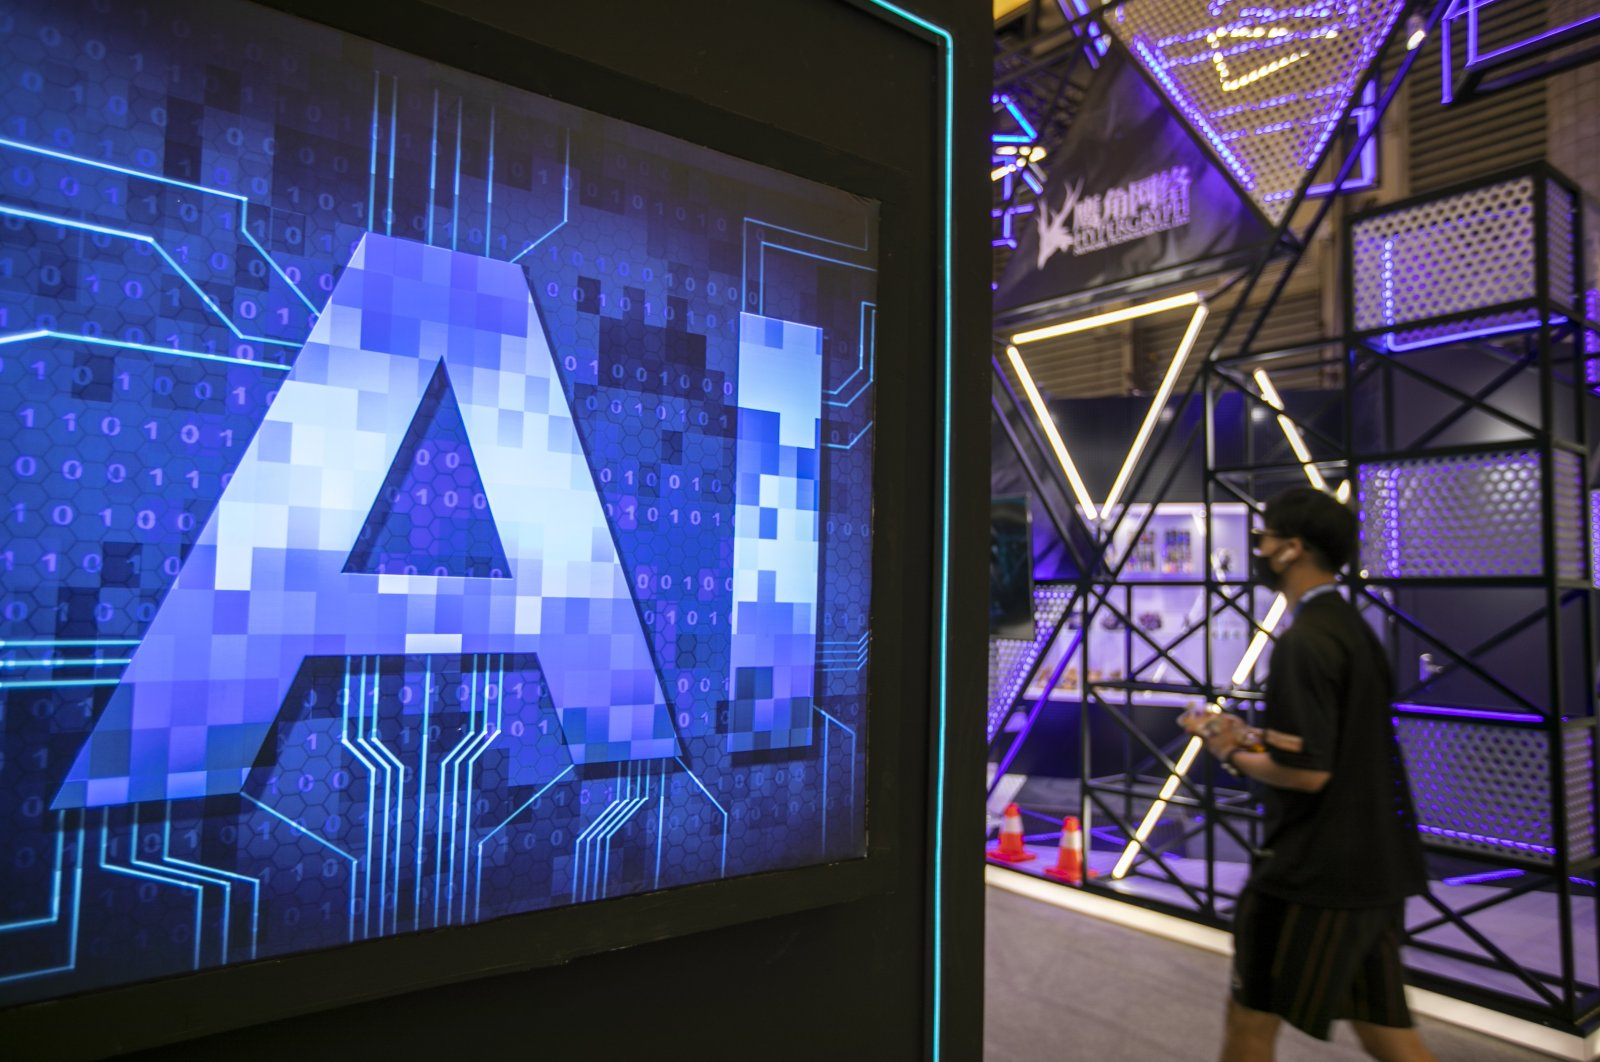 A visitor experiences artificial intelligence during the 2020 China Digital Entertainment Expo & Conference (ChinaJoy) at Shanghai New International Expo Center, Shanghai, China, July 31, 2020. (Getty Images)